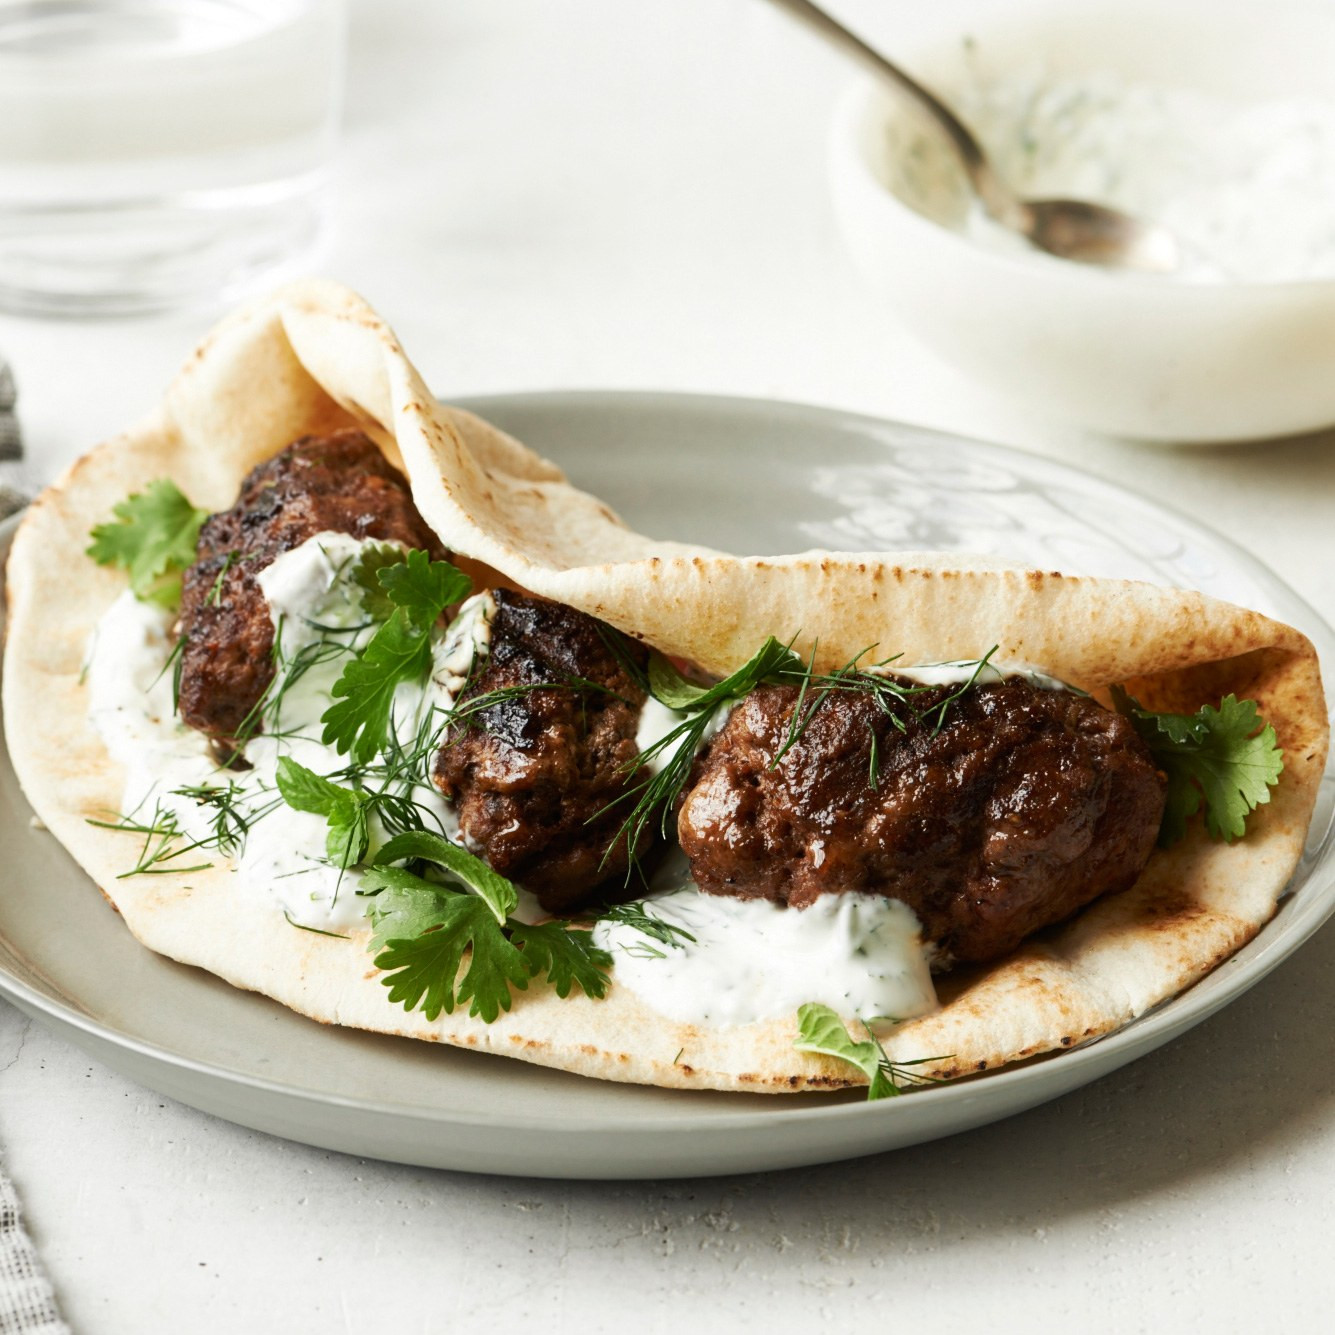 Middle Eastern Lamb Recipes  Spiced Middle Eastern Lamb Patties with Pita and Yogurt